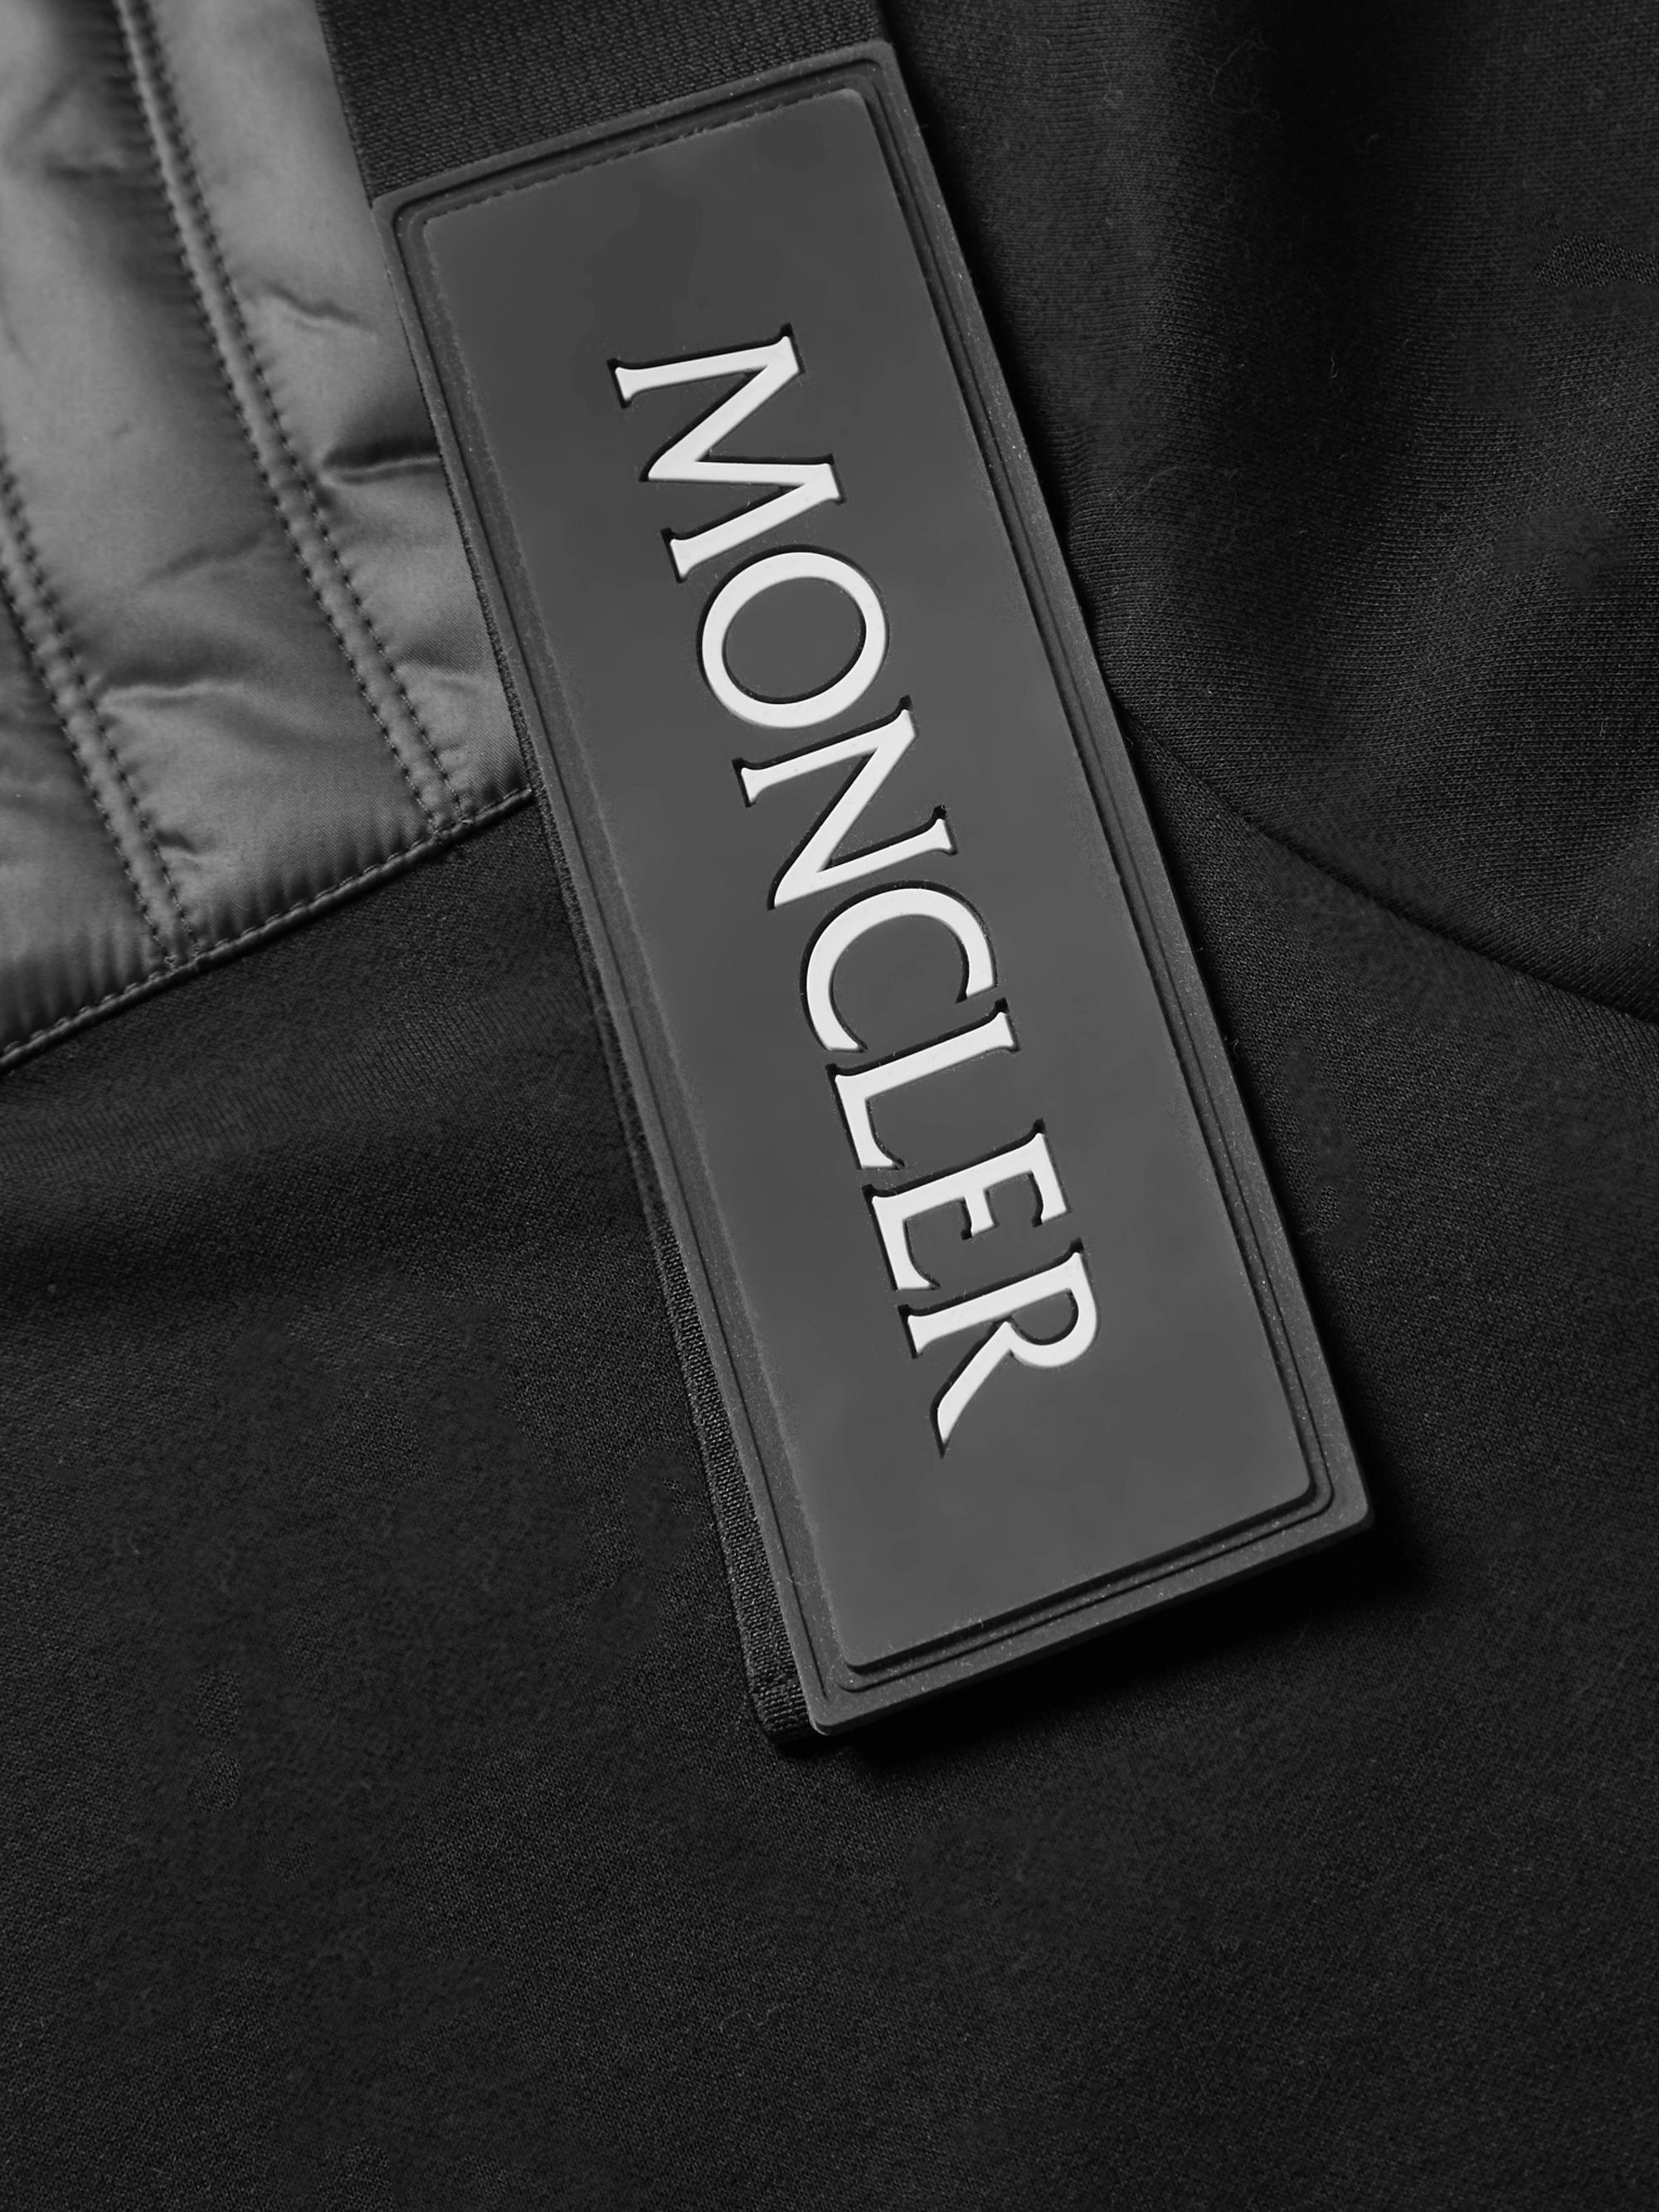 Moncler Genius 5 Moncler Craig Green Nylon-Panelled Cotton-Blend Jersey Sweatshirt